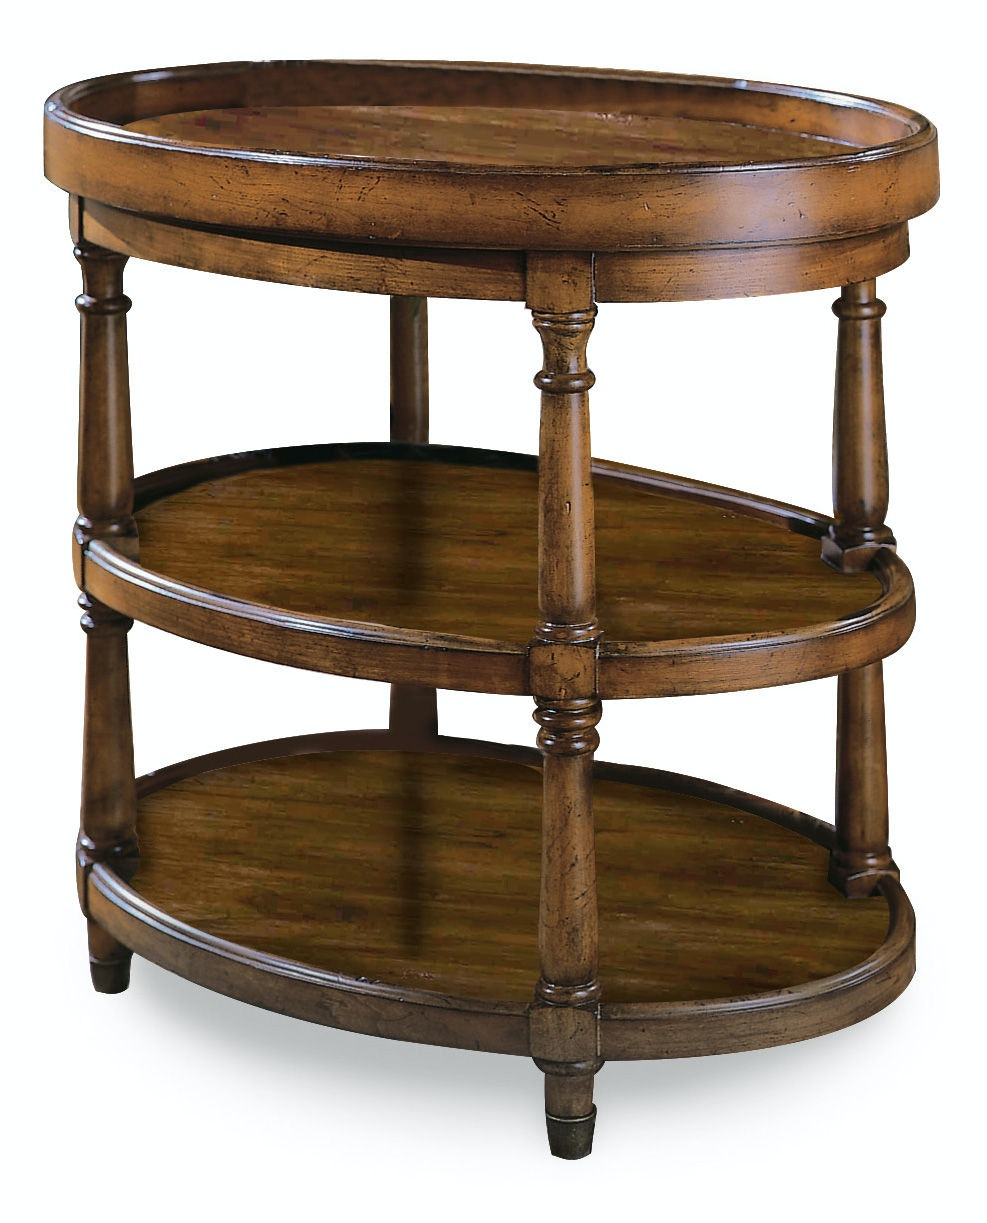 500 50 590. Oval Accent Table